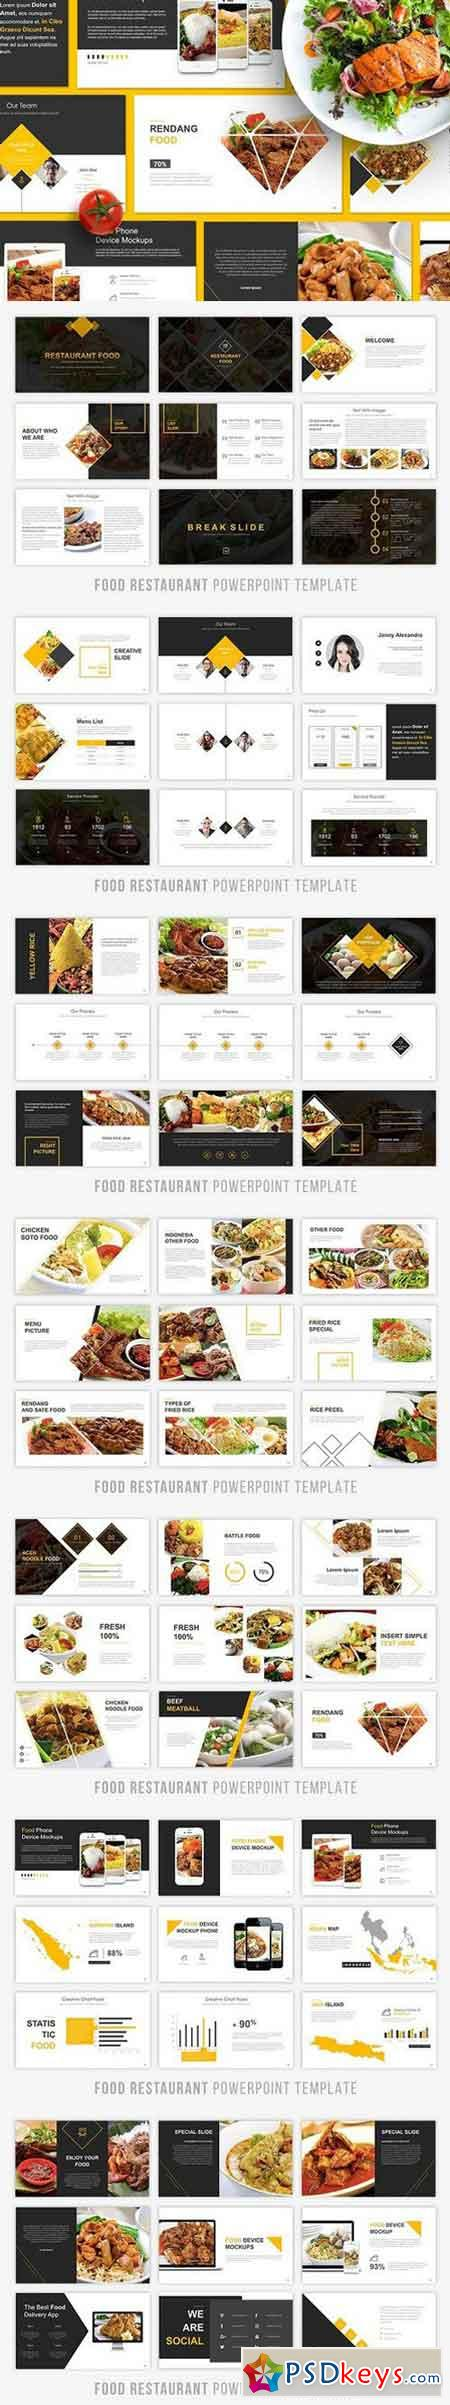 Food Presentation Powerpoint 1344563